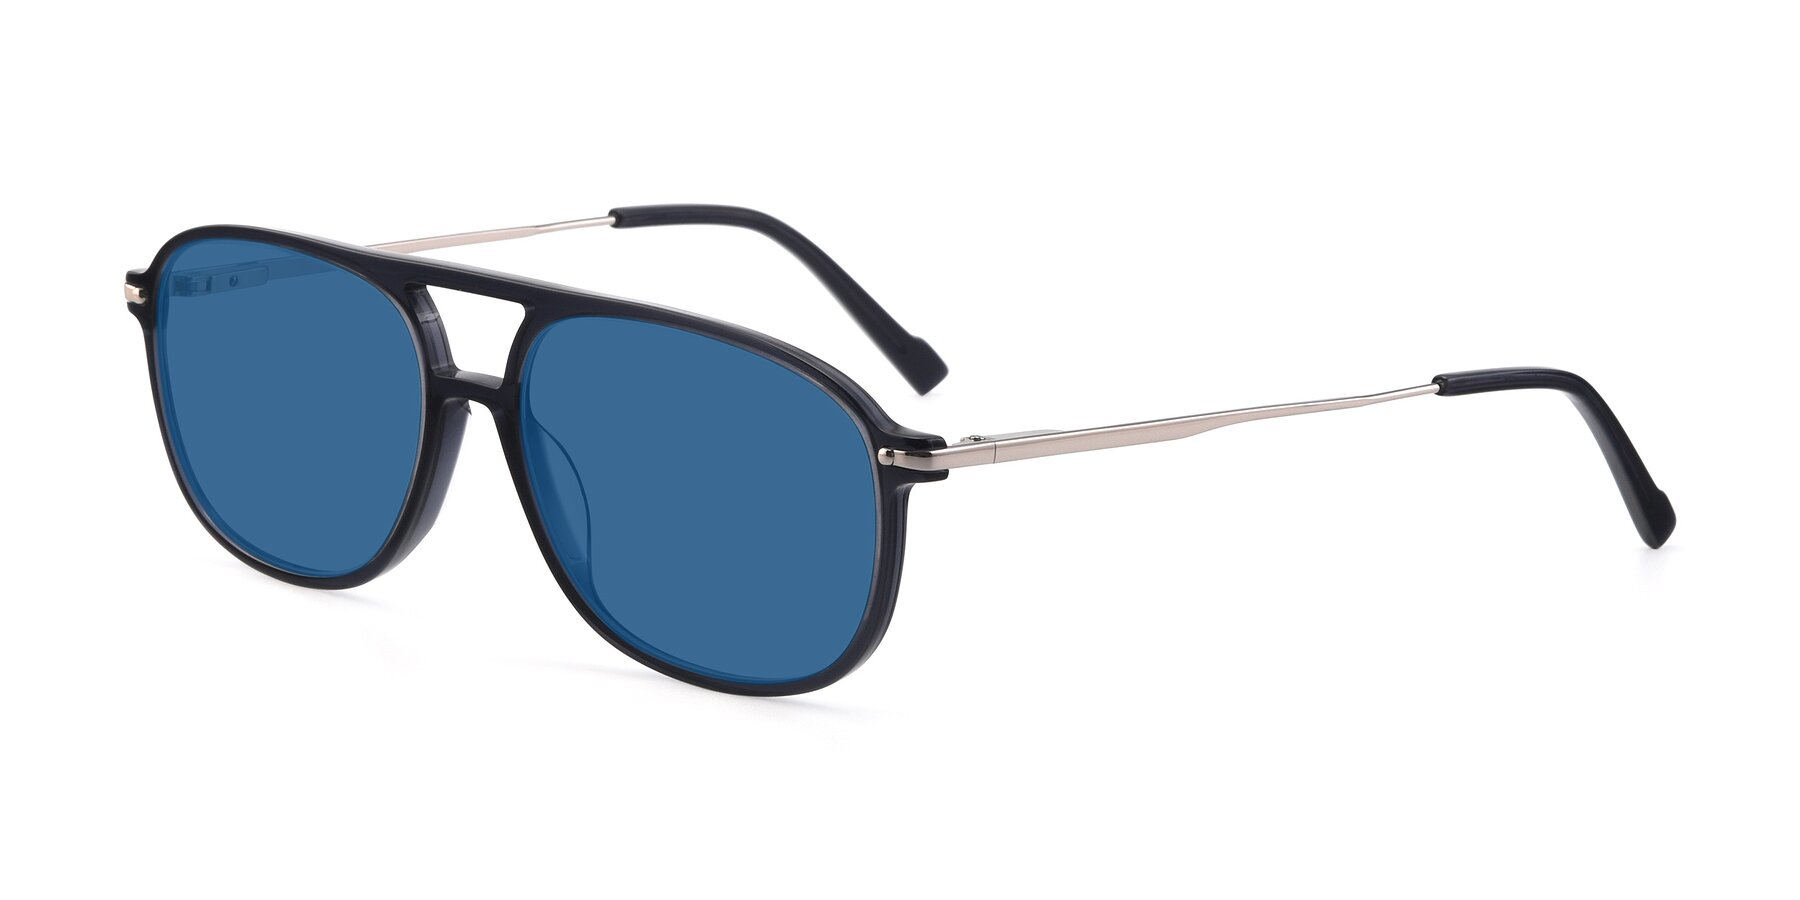 Angle of 17580 in Dark Bluish Gray with Blue Tinted Lenses